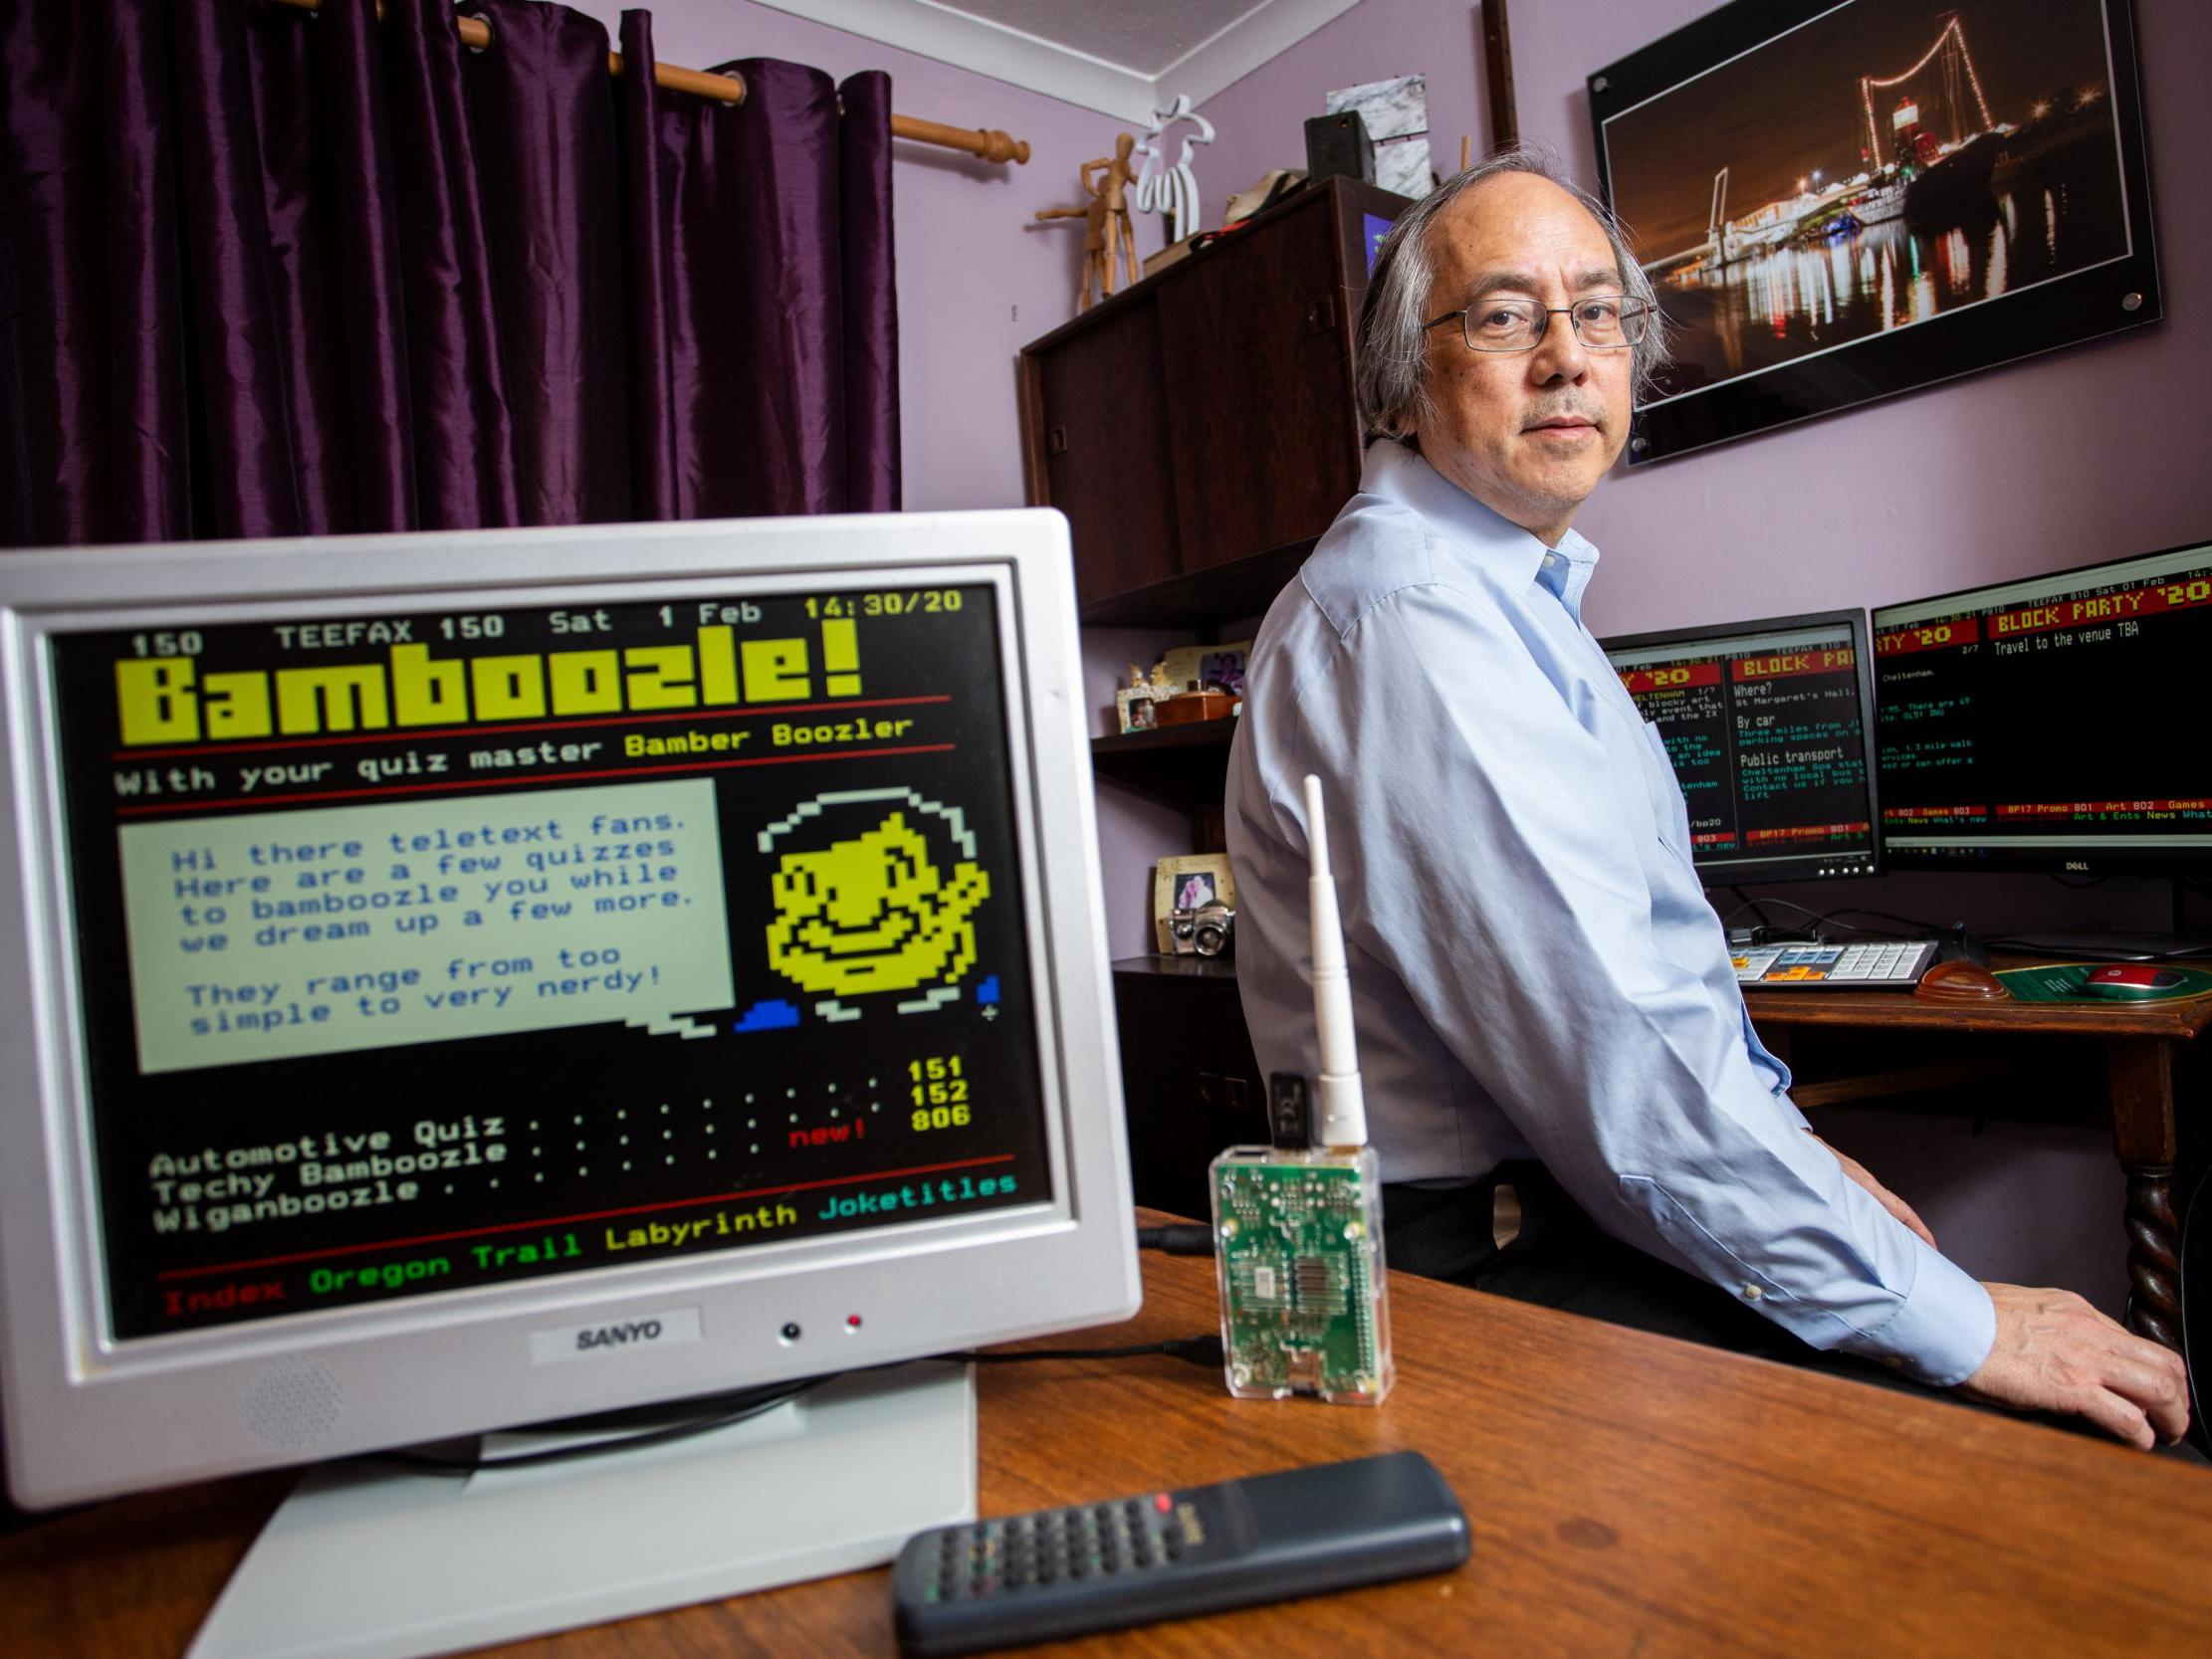 Man who misses Ceefax spends years creating his own version